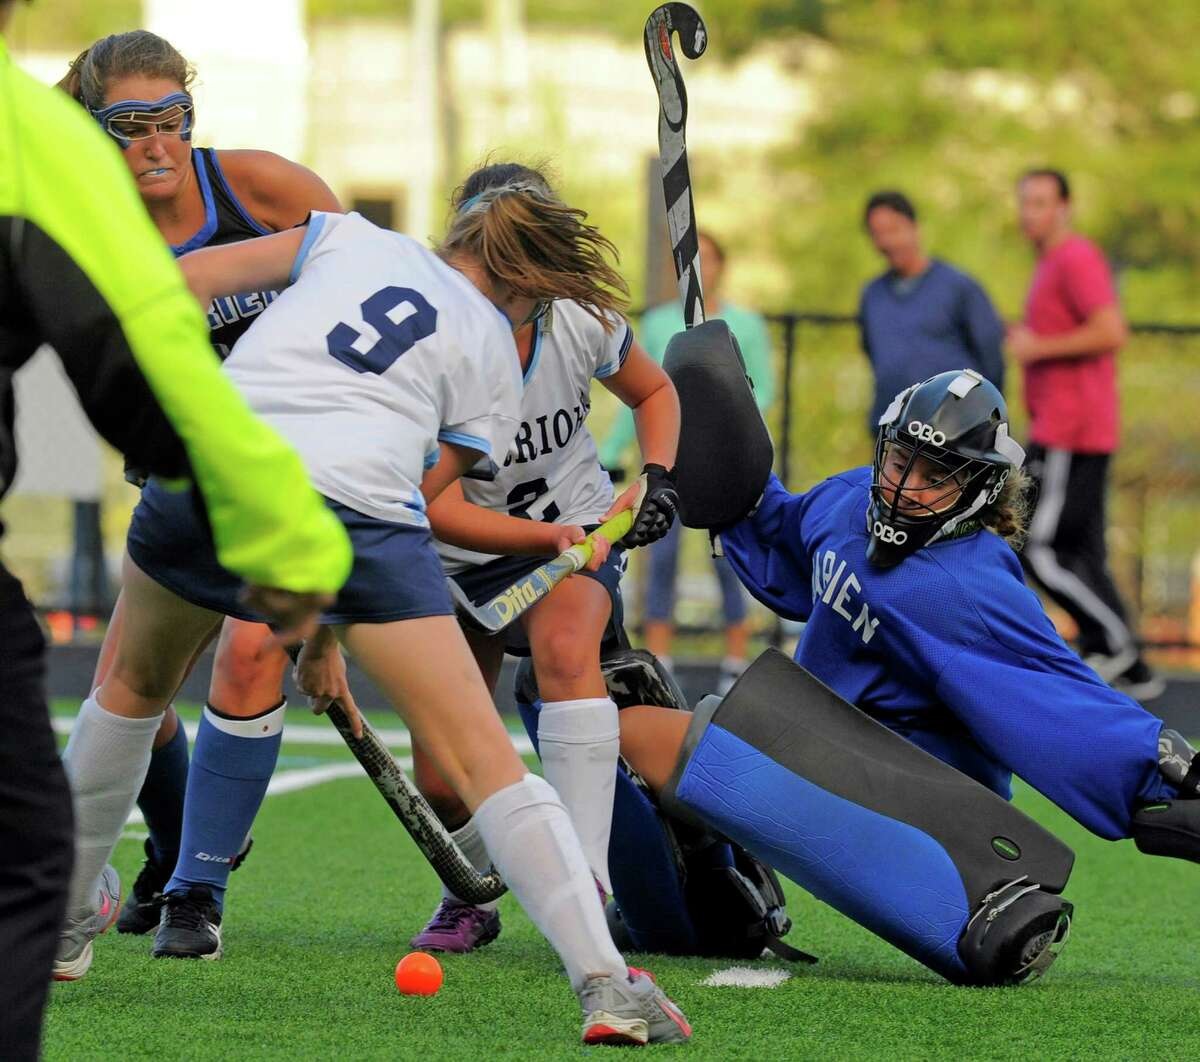 Darien goalie Kallie Coughlin attempts to block the secon-half goal of Wilton's Delaney Chase during the Warriors' 3-1 victory on Tuesday in Wilton.